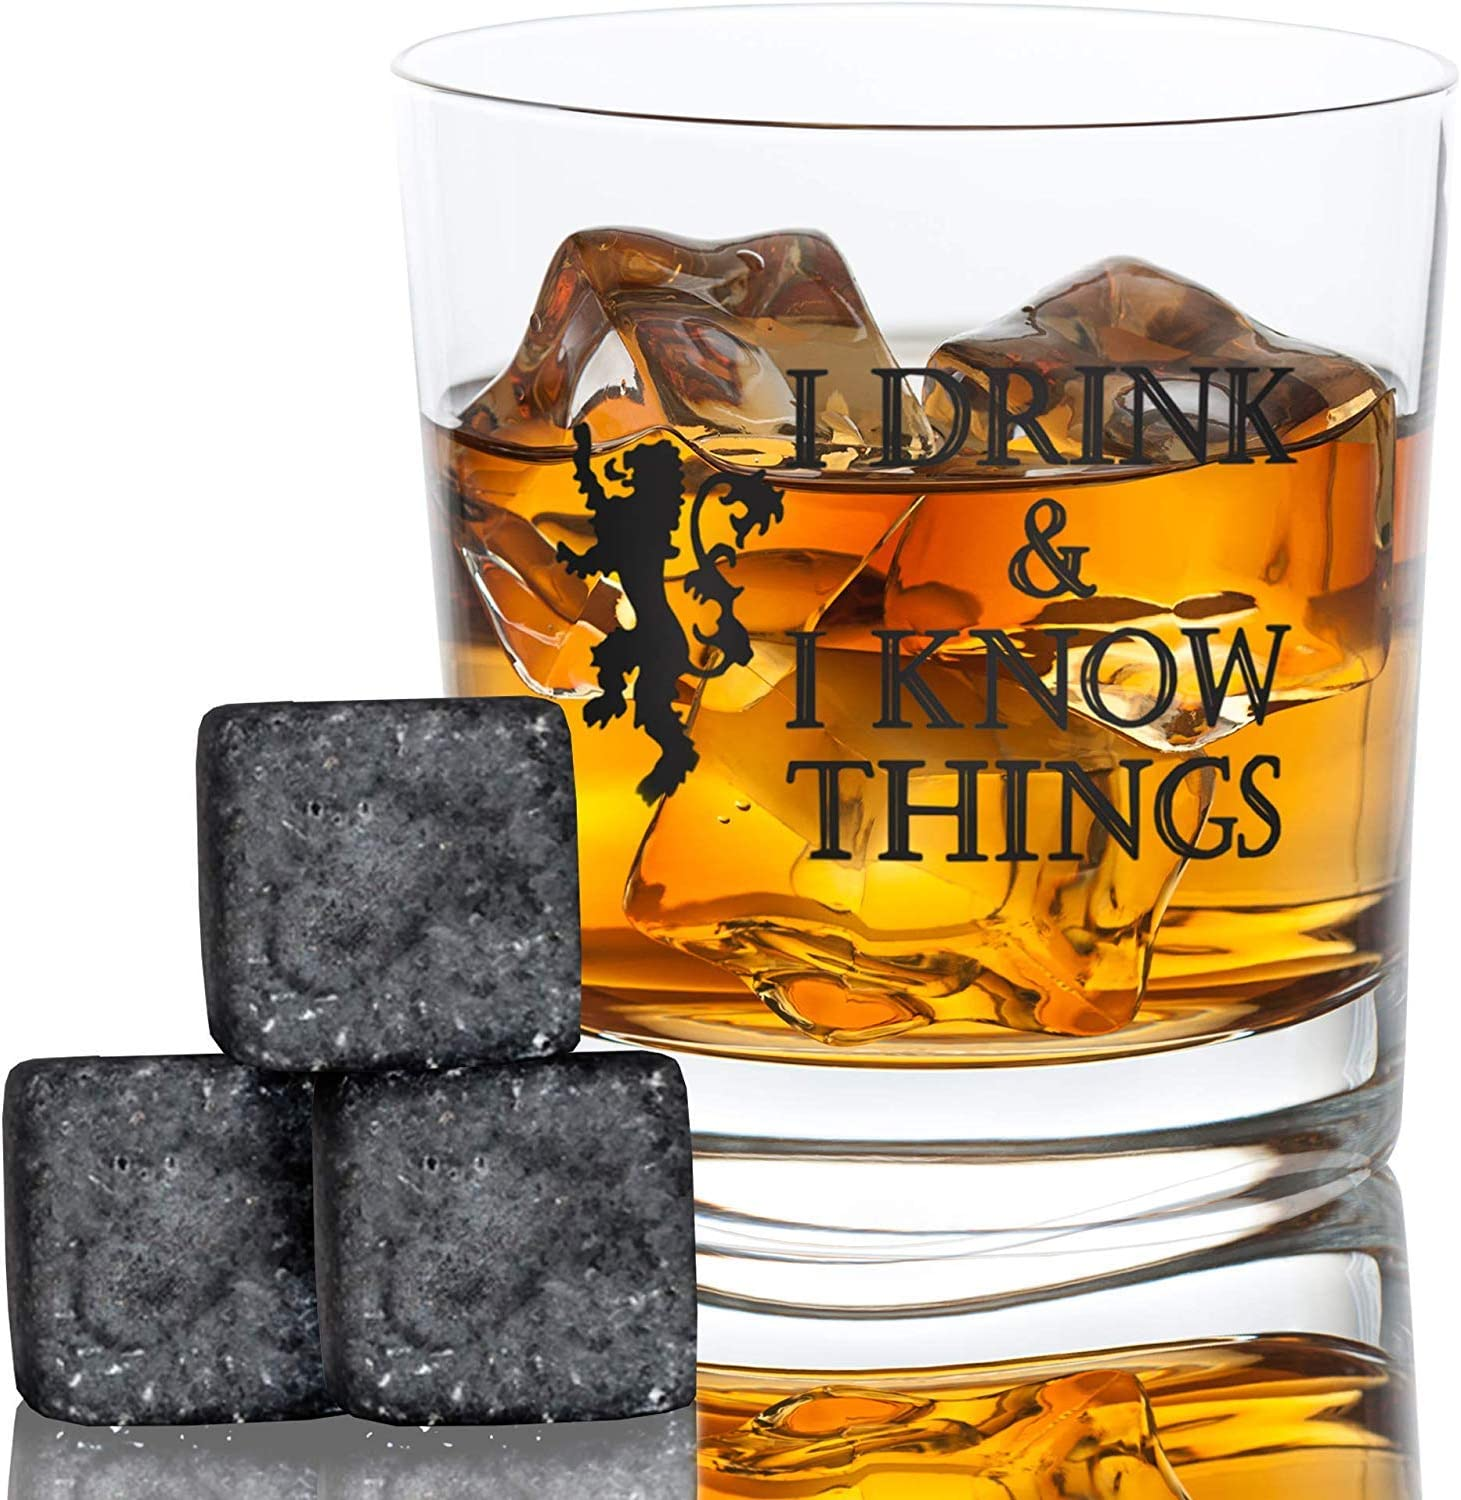 I drink and I know things That/'s what I do blank inside. Game of Thrones handmade card